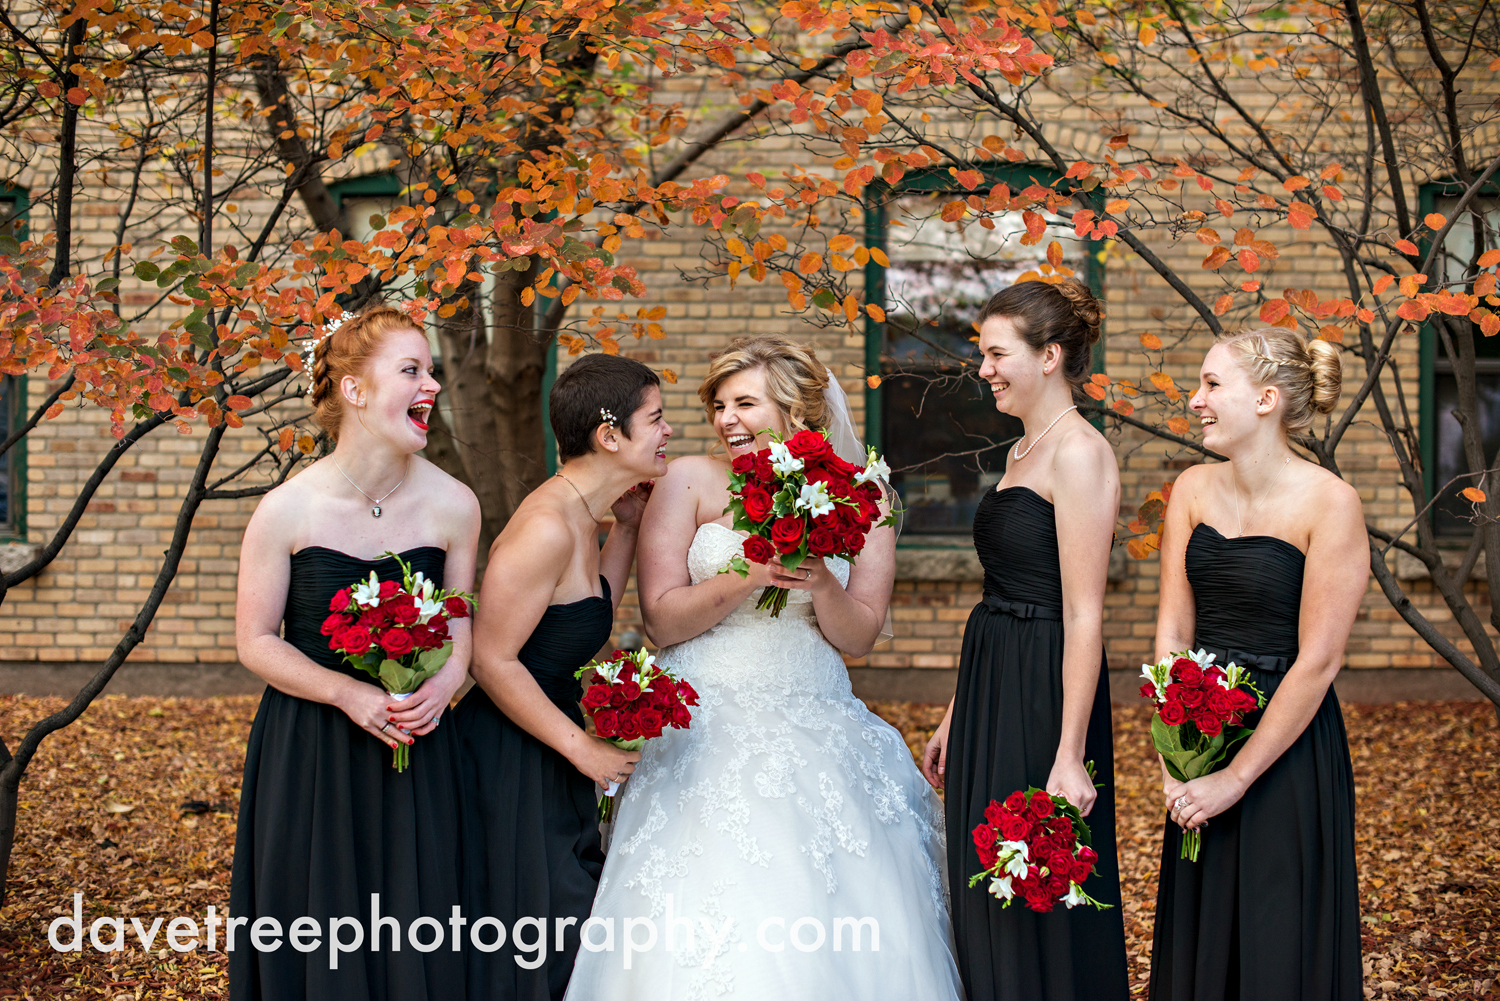 holland_wedding_photographer_56.jpg